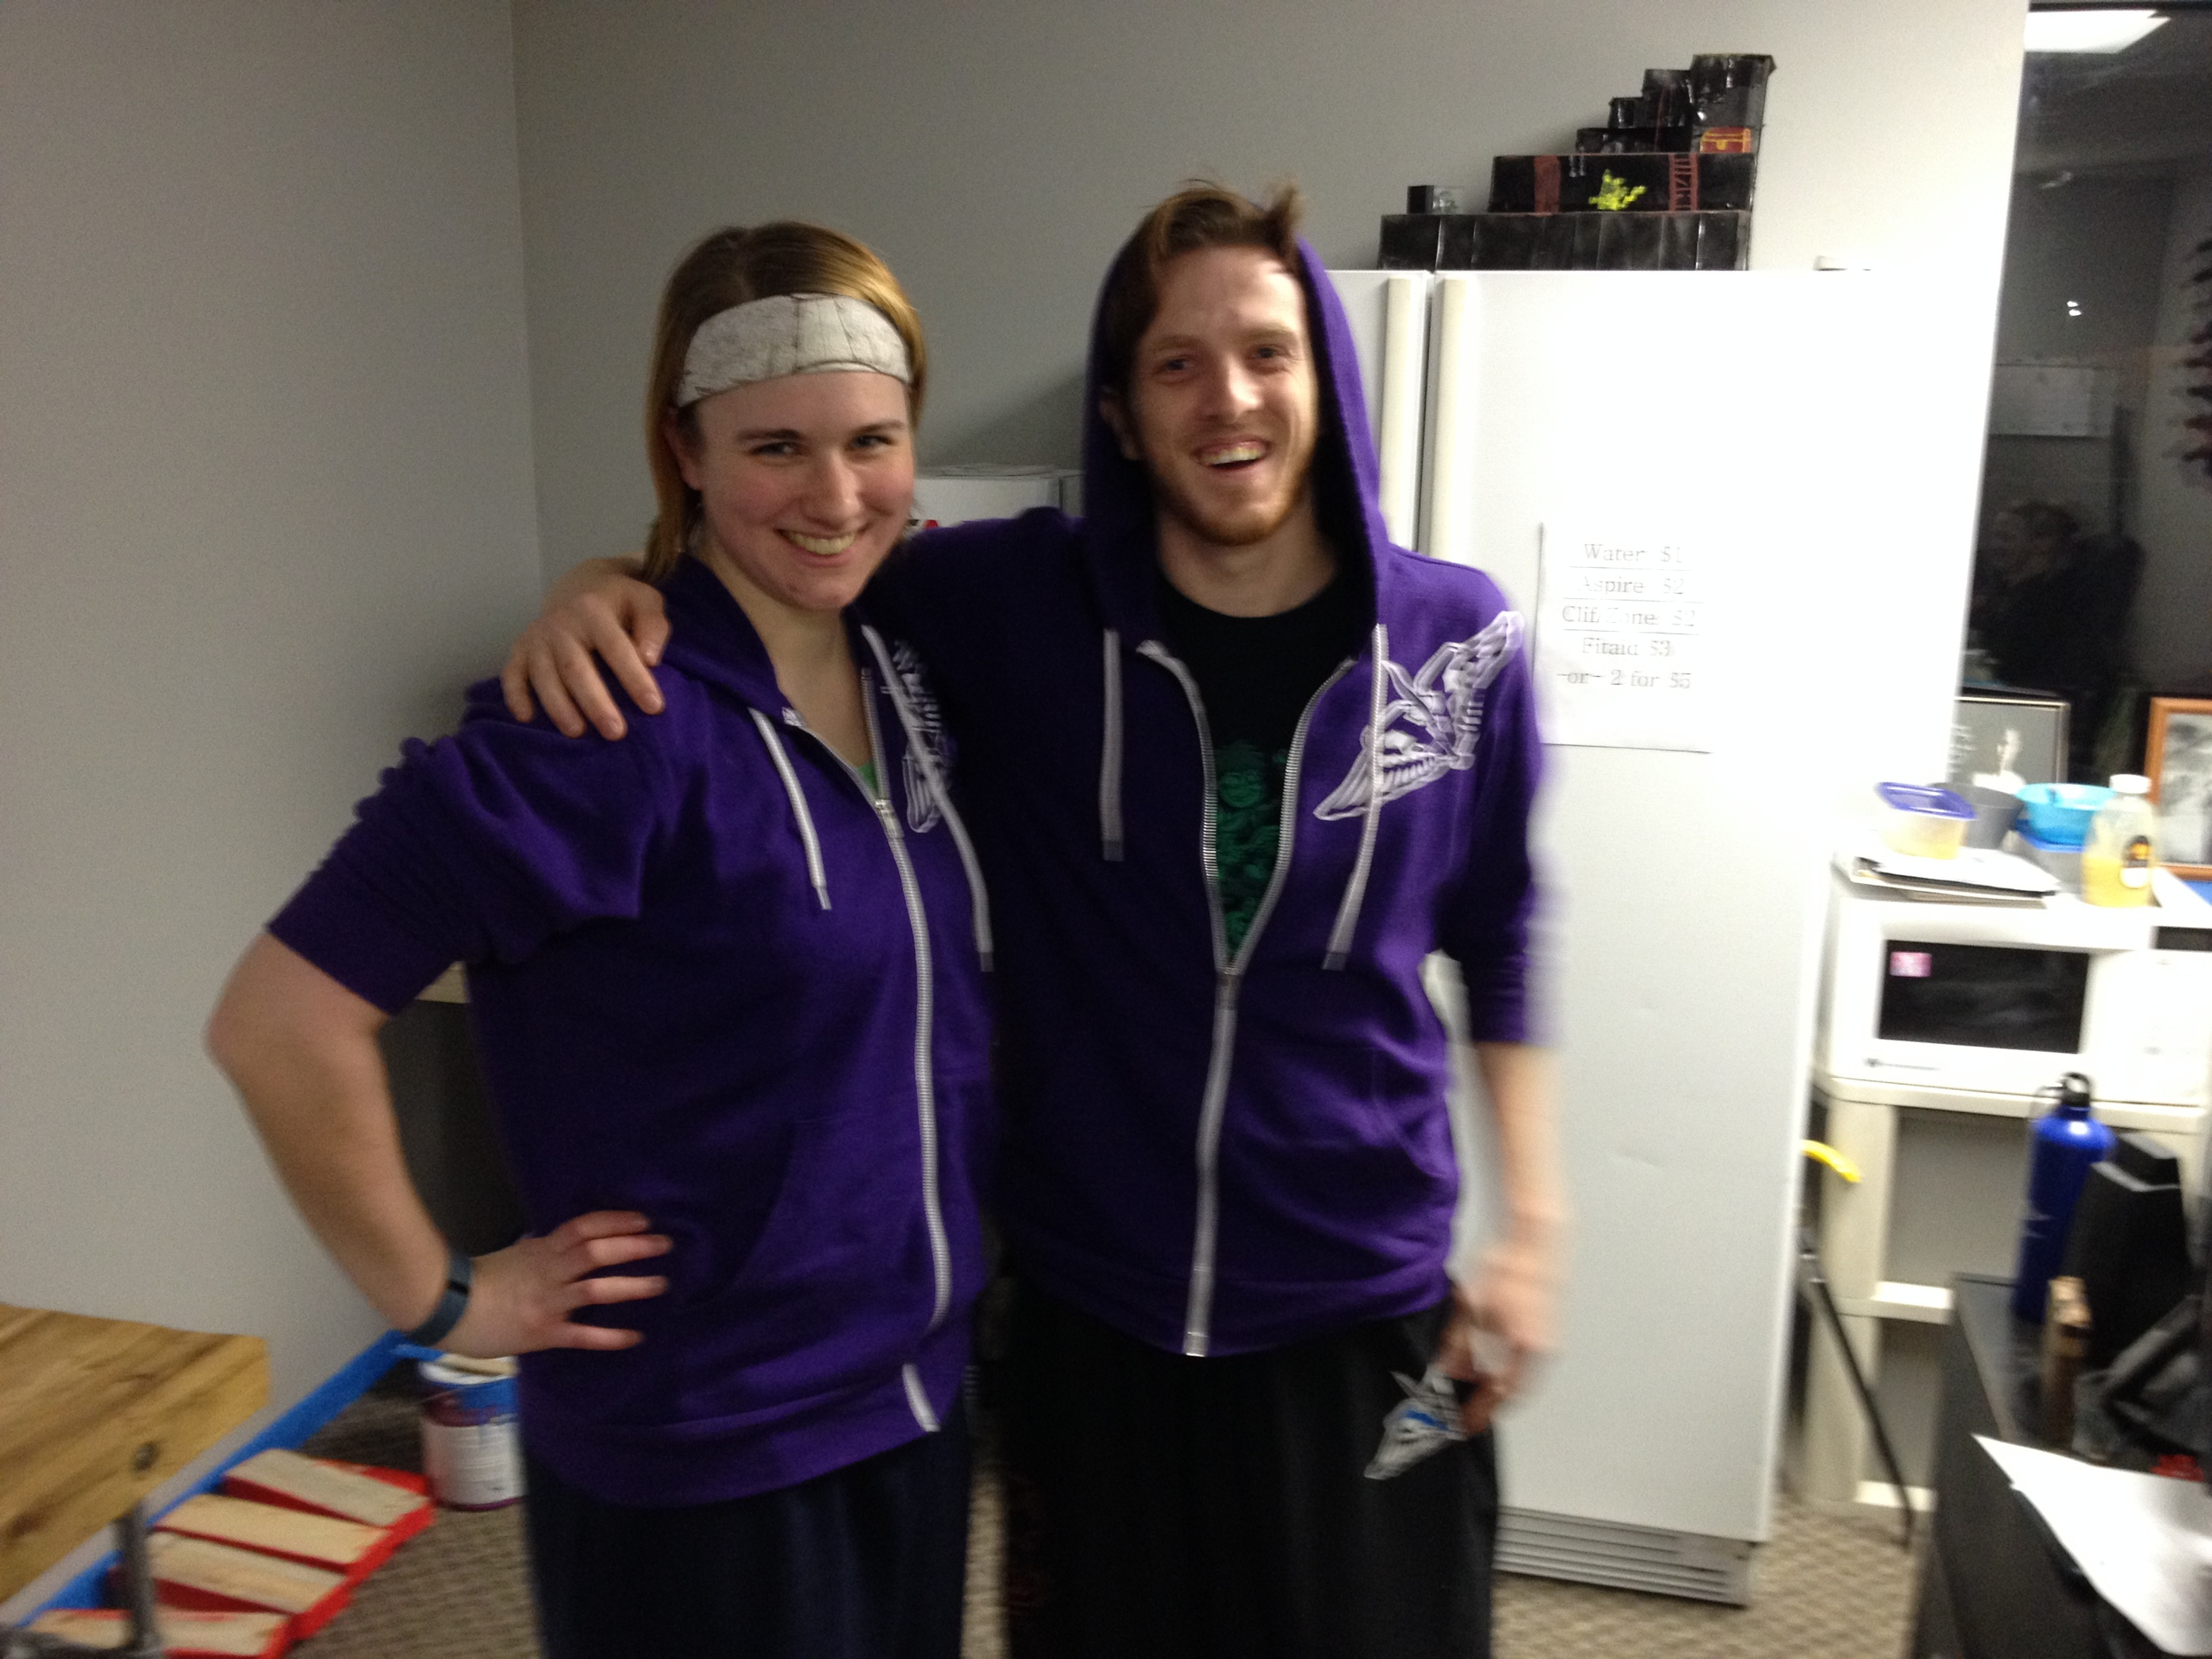 Josh might be a big jerk most of the time, but we're still purple twins!